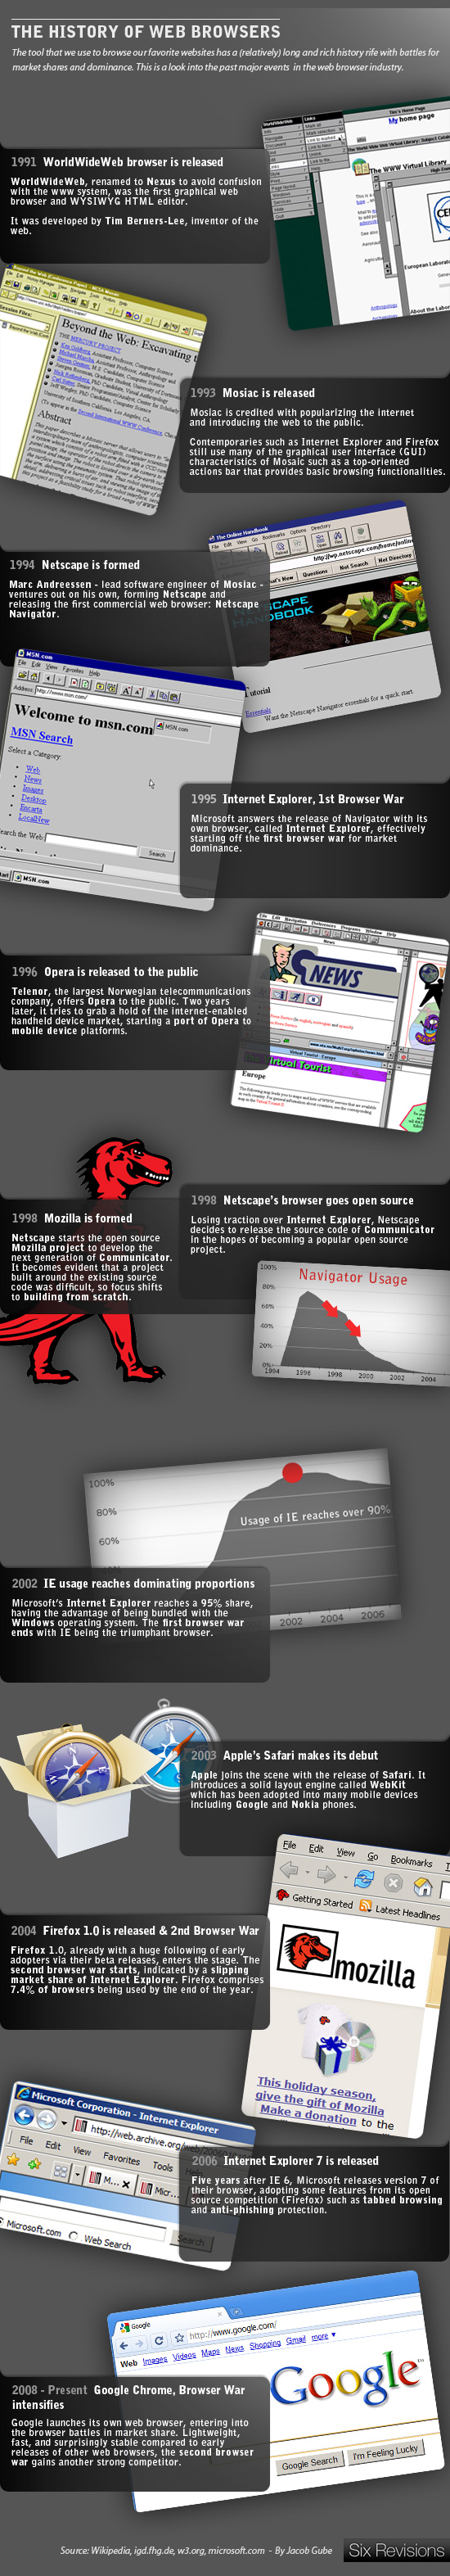 29-02_history_web_browser_infographic